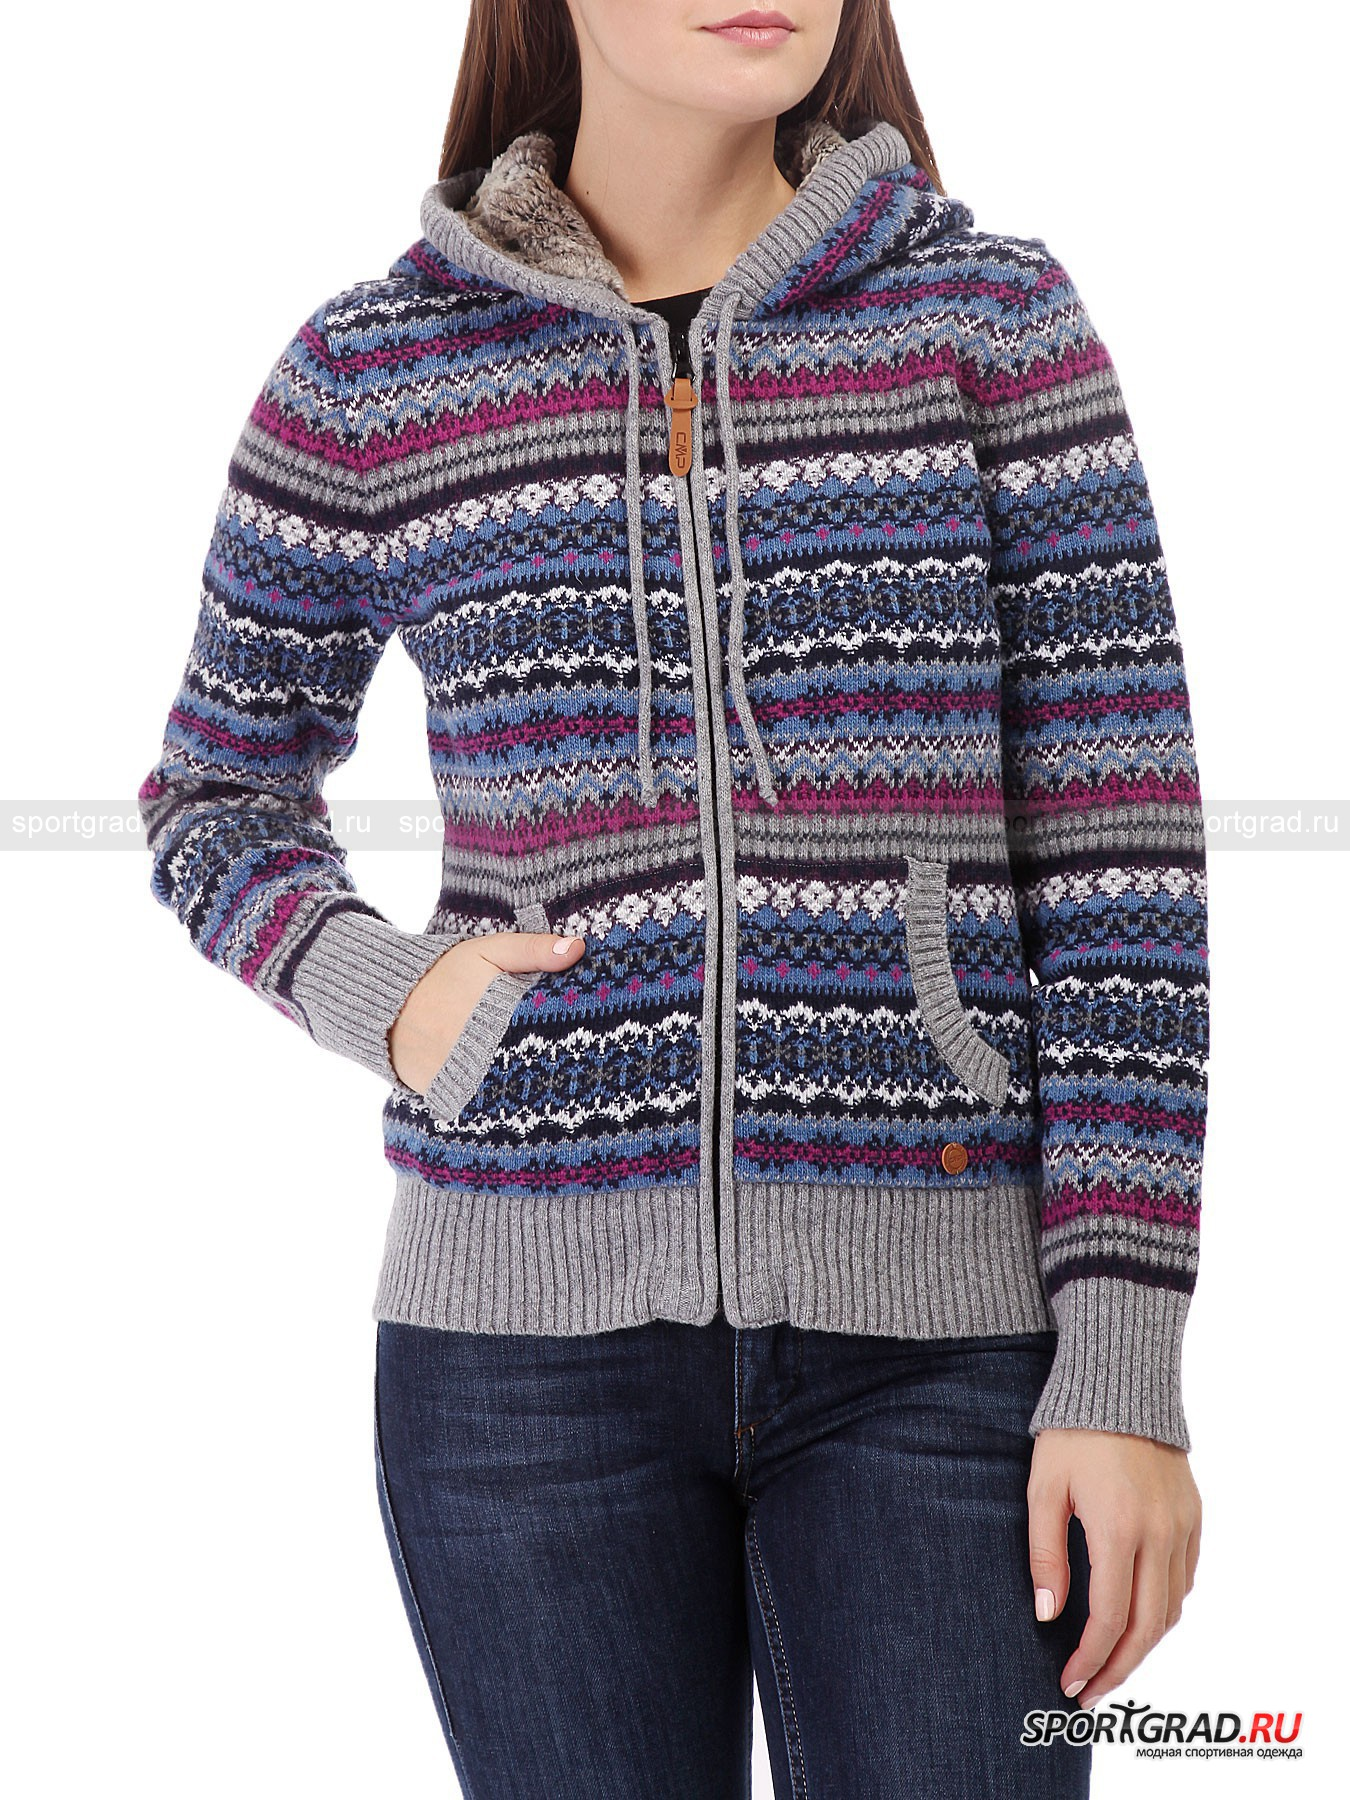 �������� ������� �� ������ Knitted Pullover CAMPAGNOLO